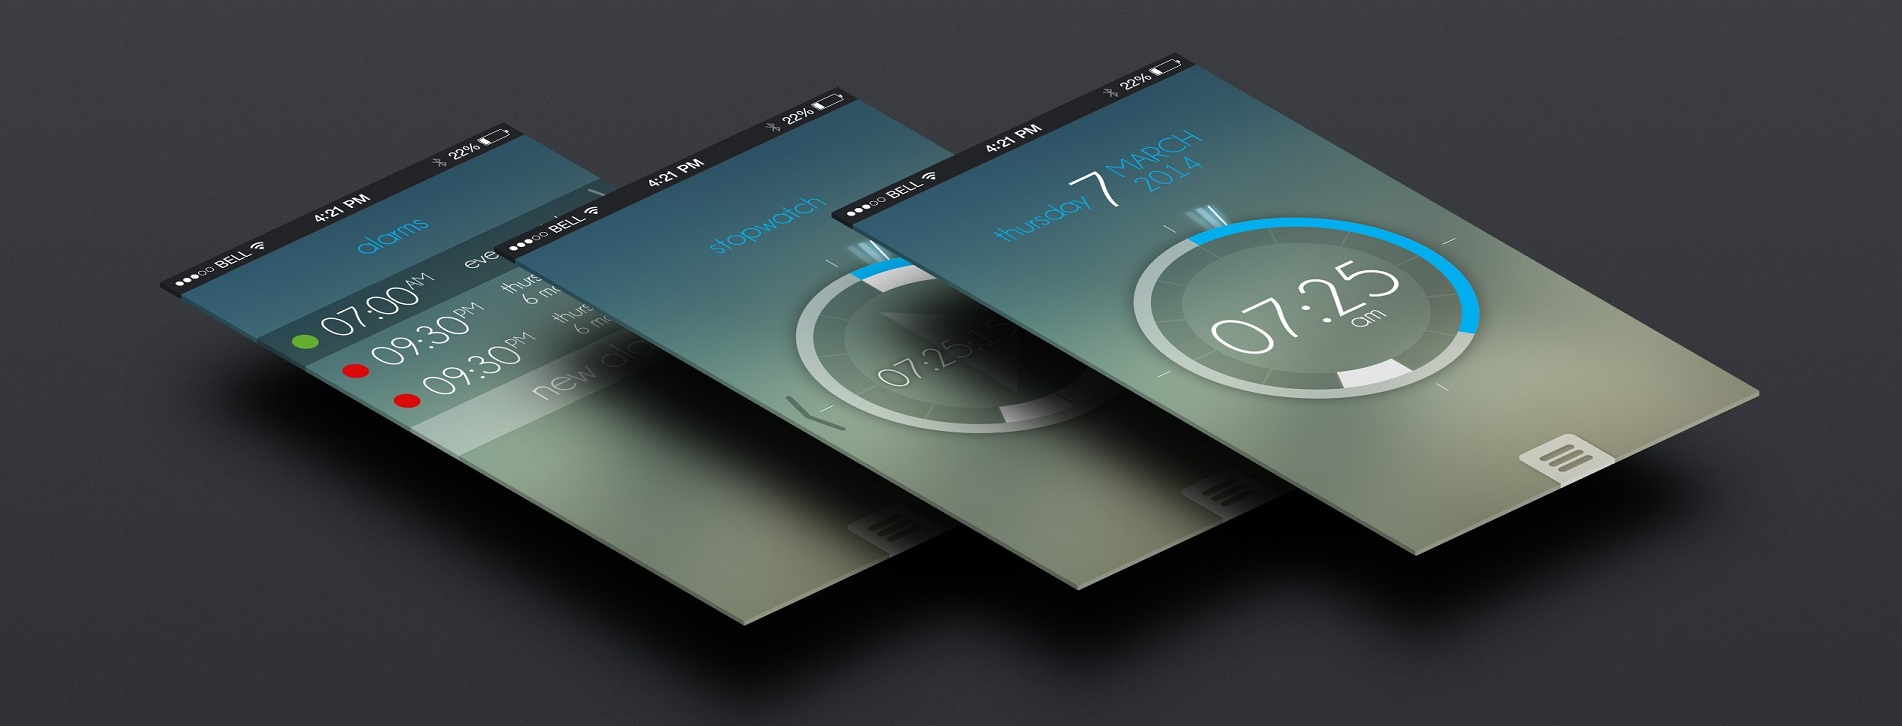 SmartPhone-Screens-presentation-Mock-up-smaller